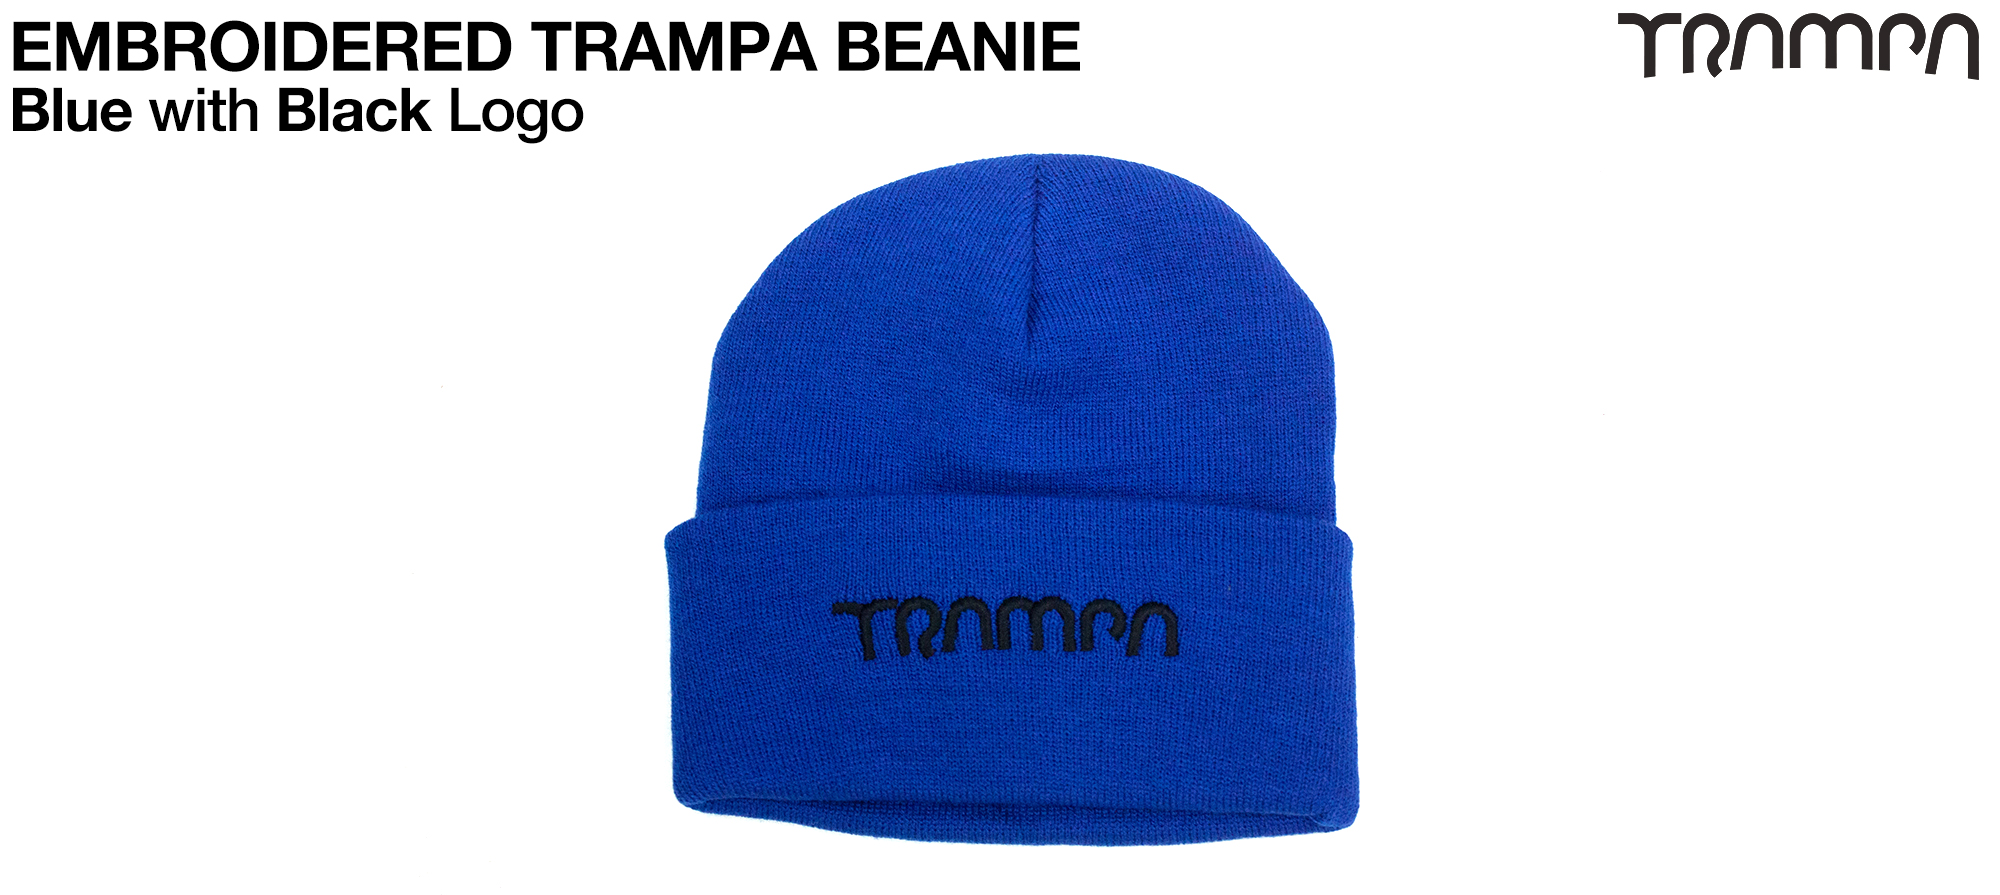 BLUE Wooli Hat with BLACK TRAMPA Embroidery - Double thick turn over for extra warmth